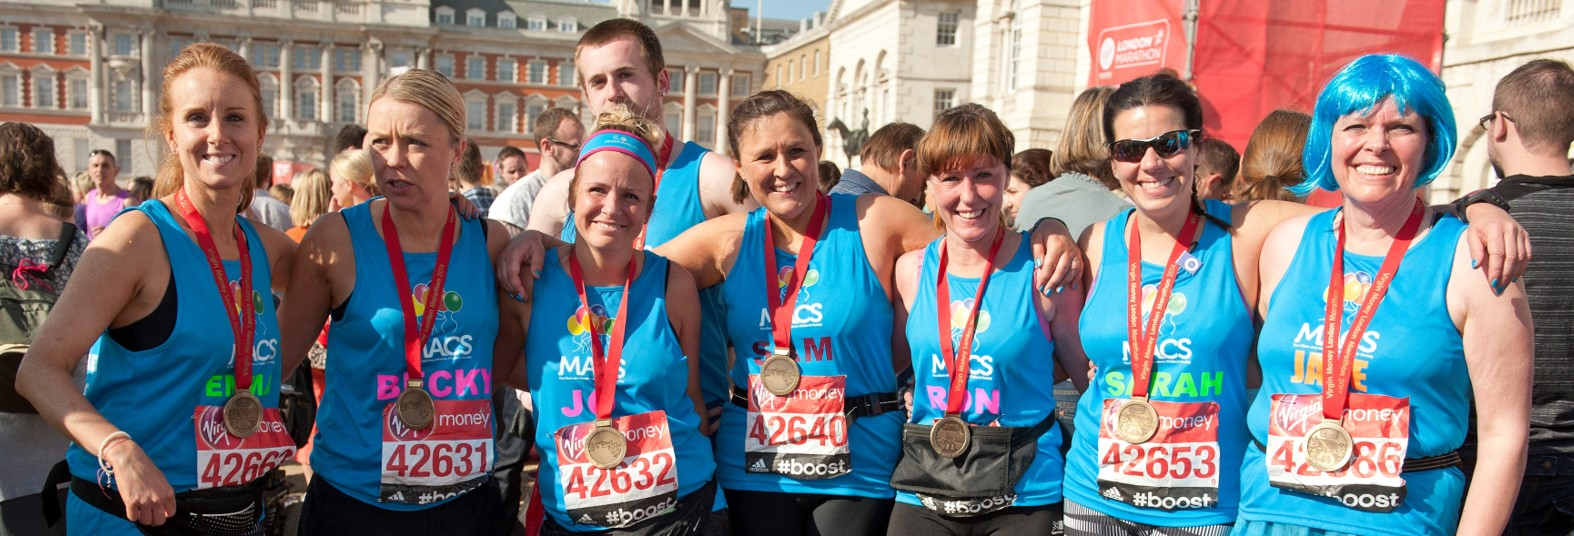 Image shows a group of MACS runners with their medals